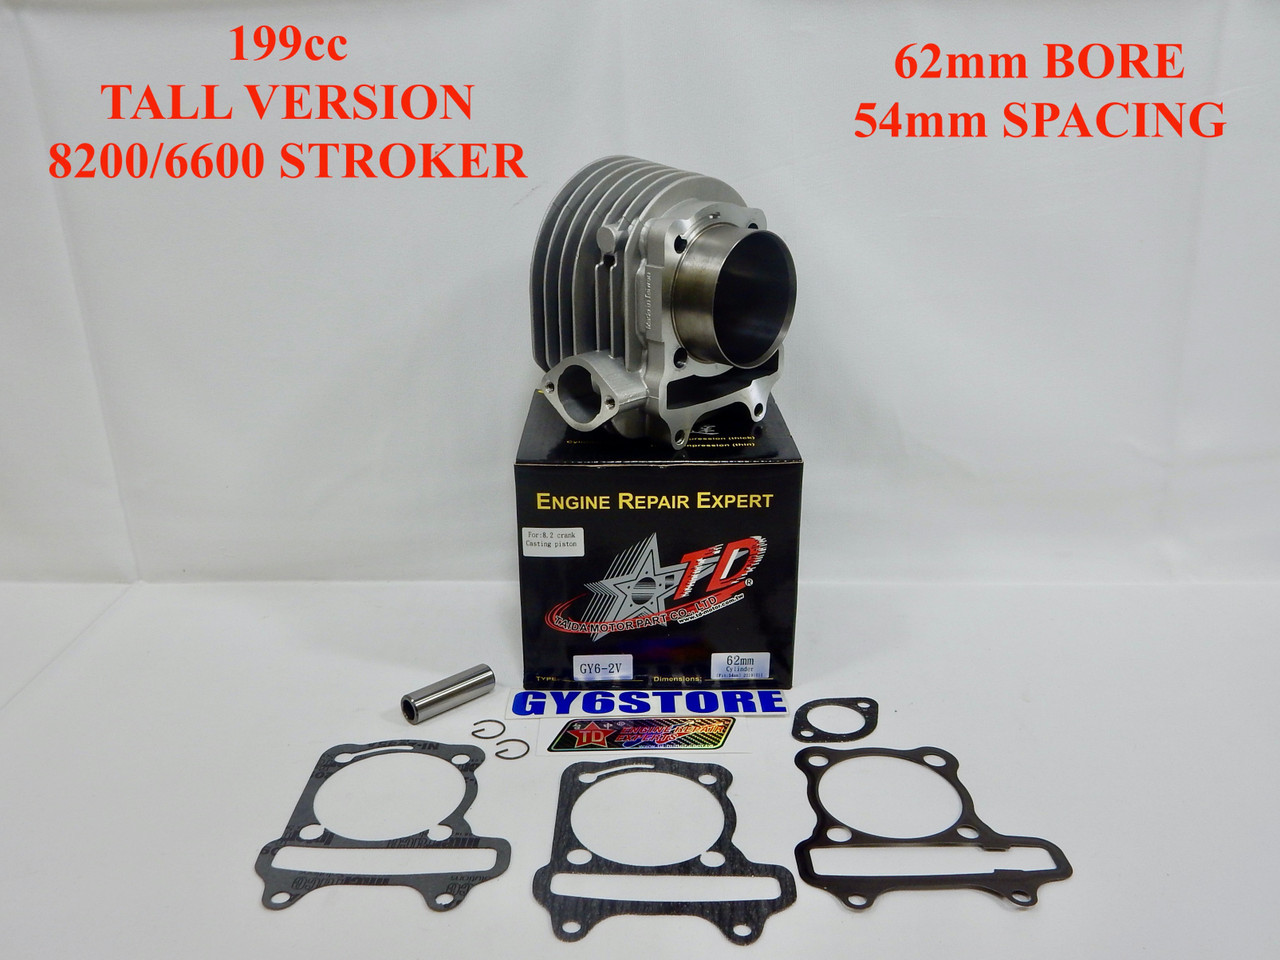 TAIDA 199cc (62mm BORE) GY6 CYLINDER SET (54mm SPACING) TALL *8200/6600 STROKER* CAST FLAT TOP PISTON